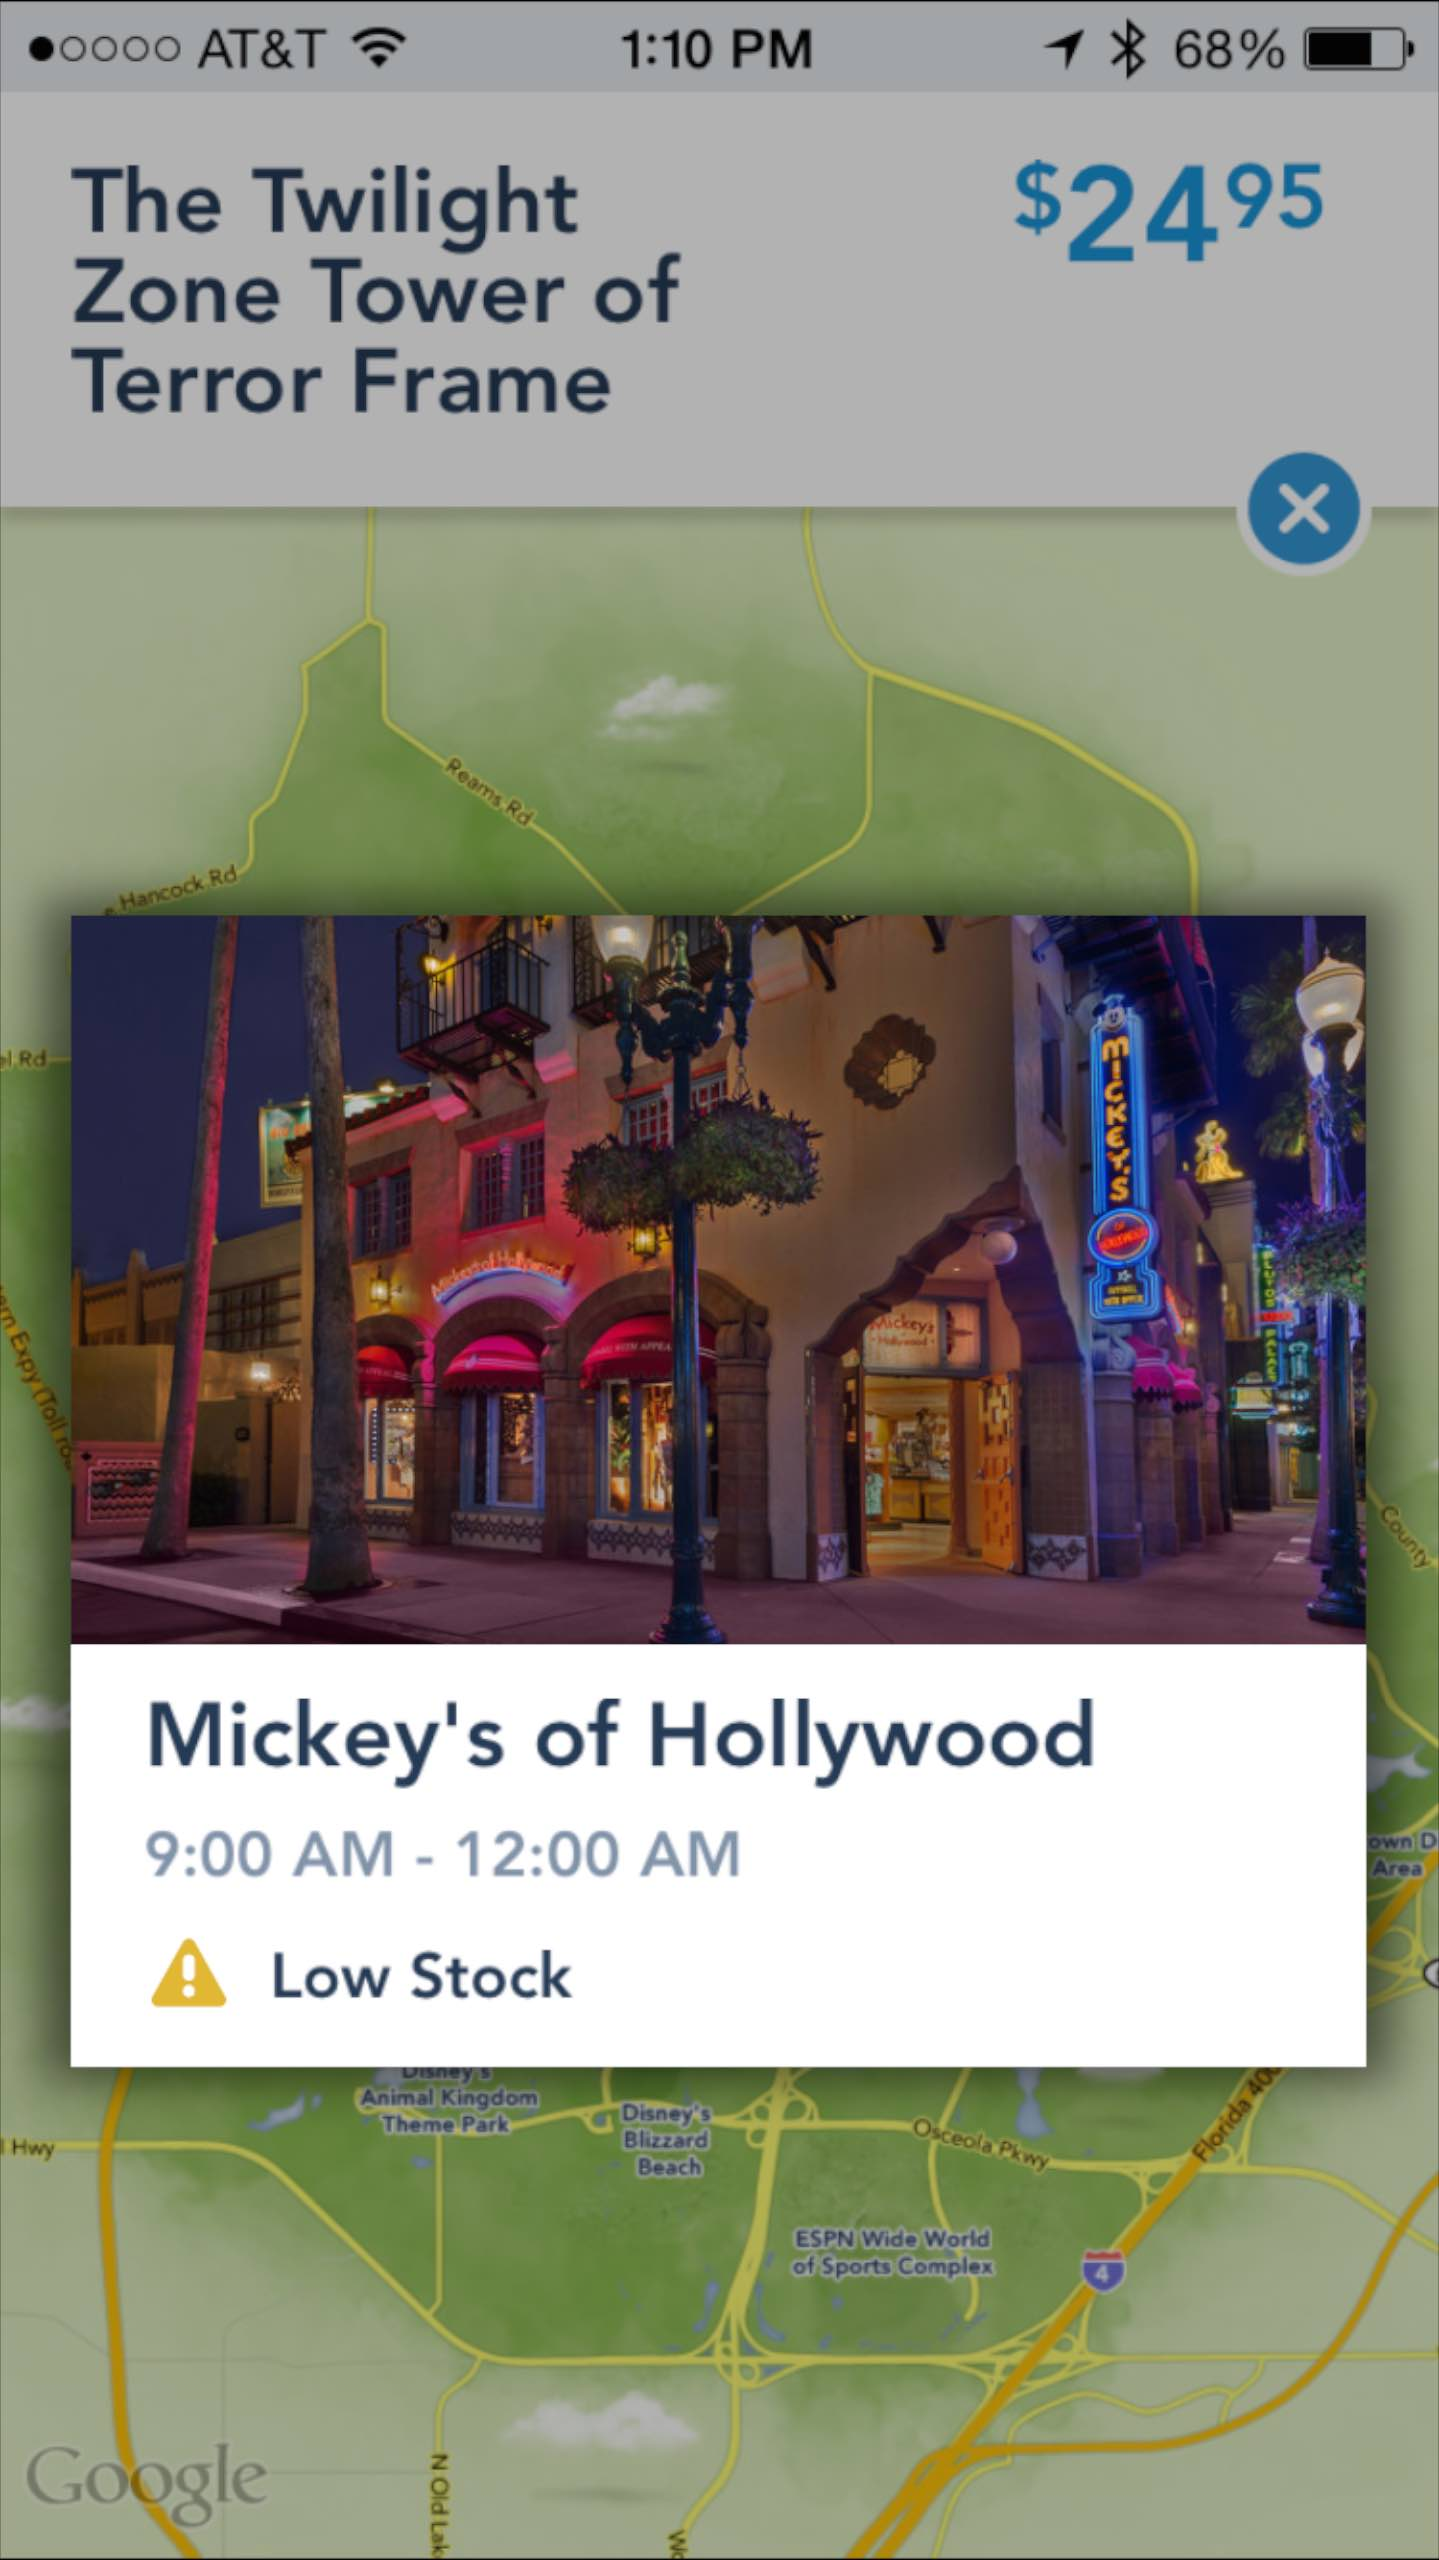 Shop Disney Parks app - Stock level at the second store to carry the item